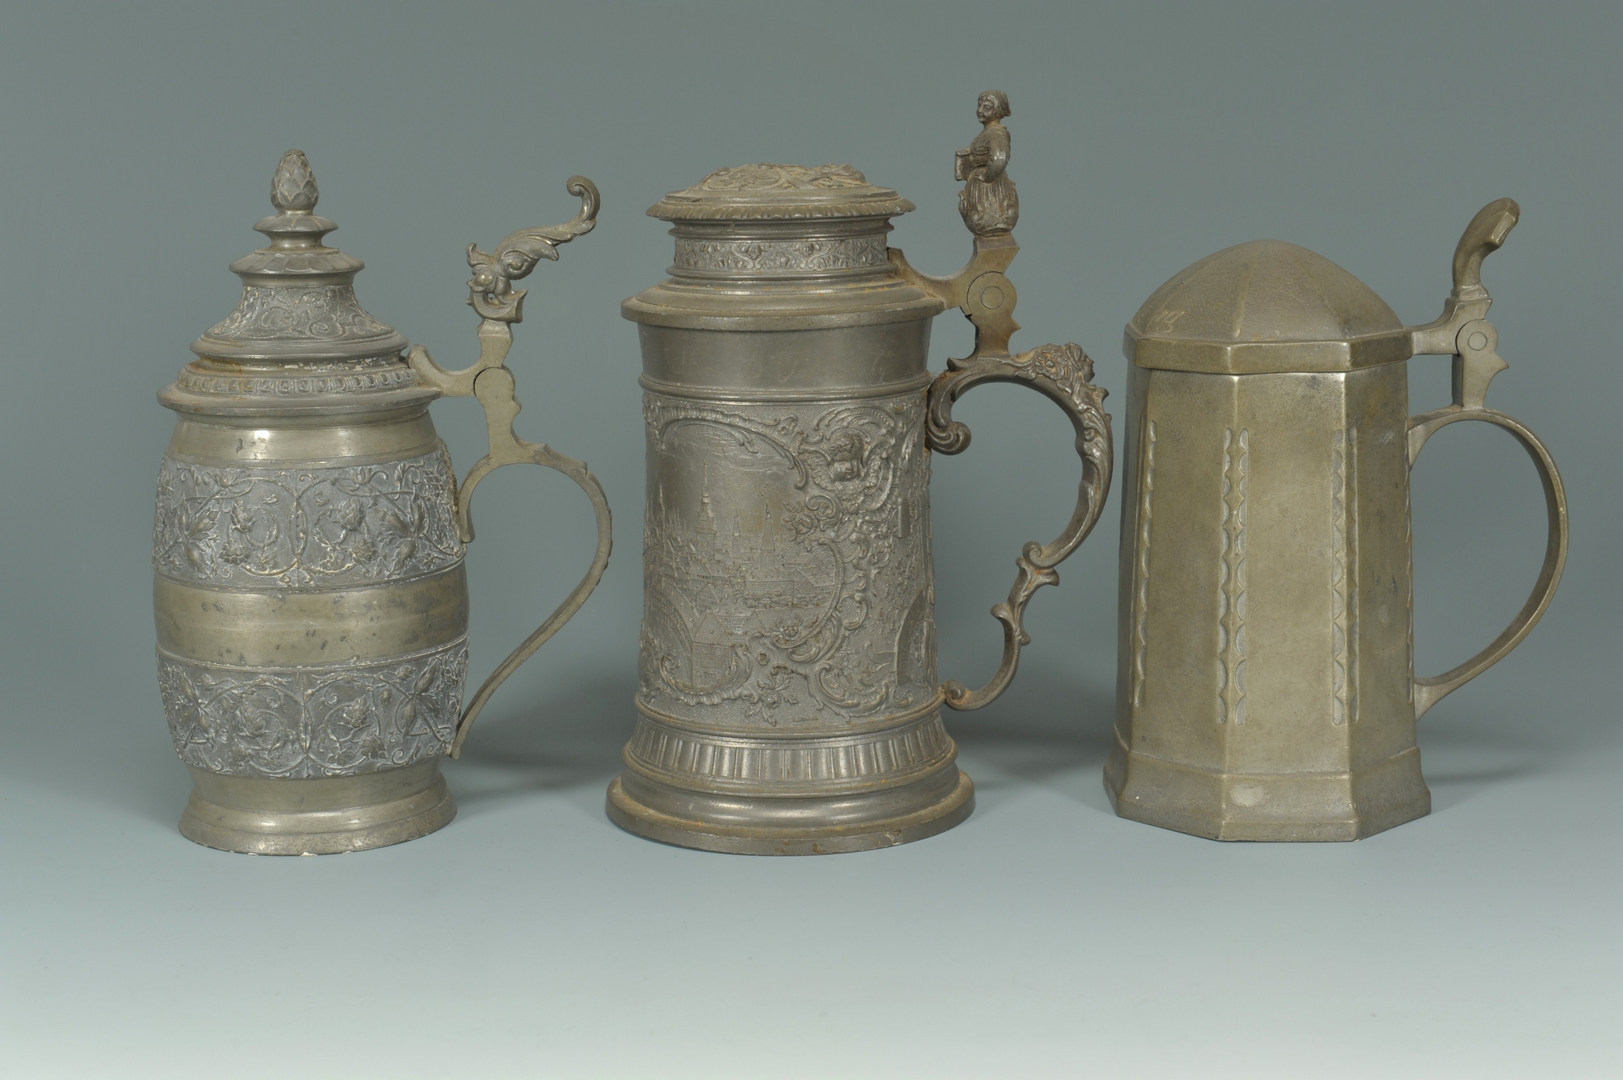 Lot 524: Lot of assorted metalware, mostly pewter, 11 pcs